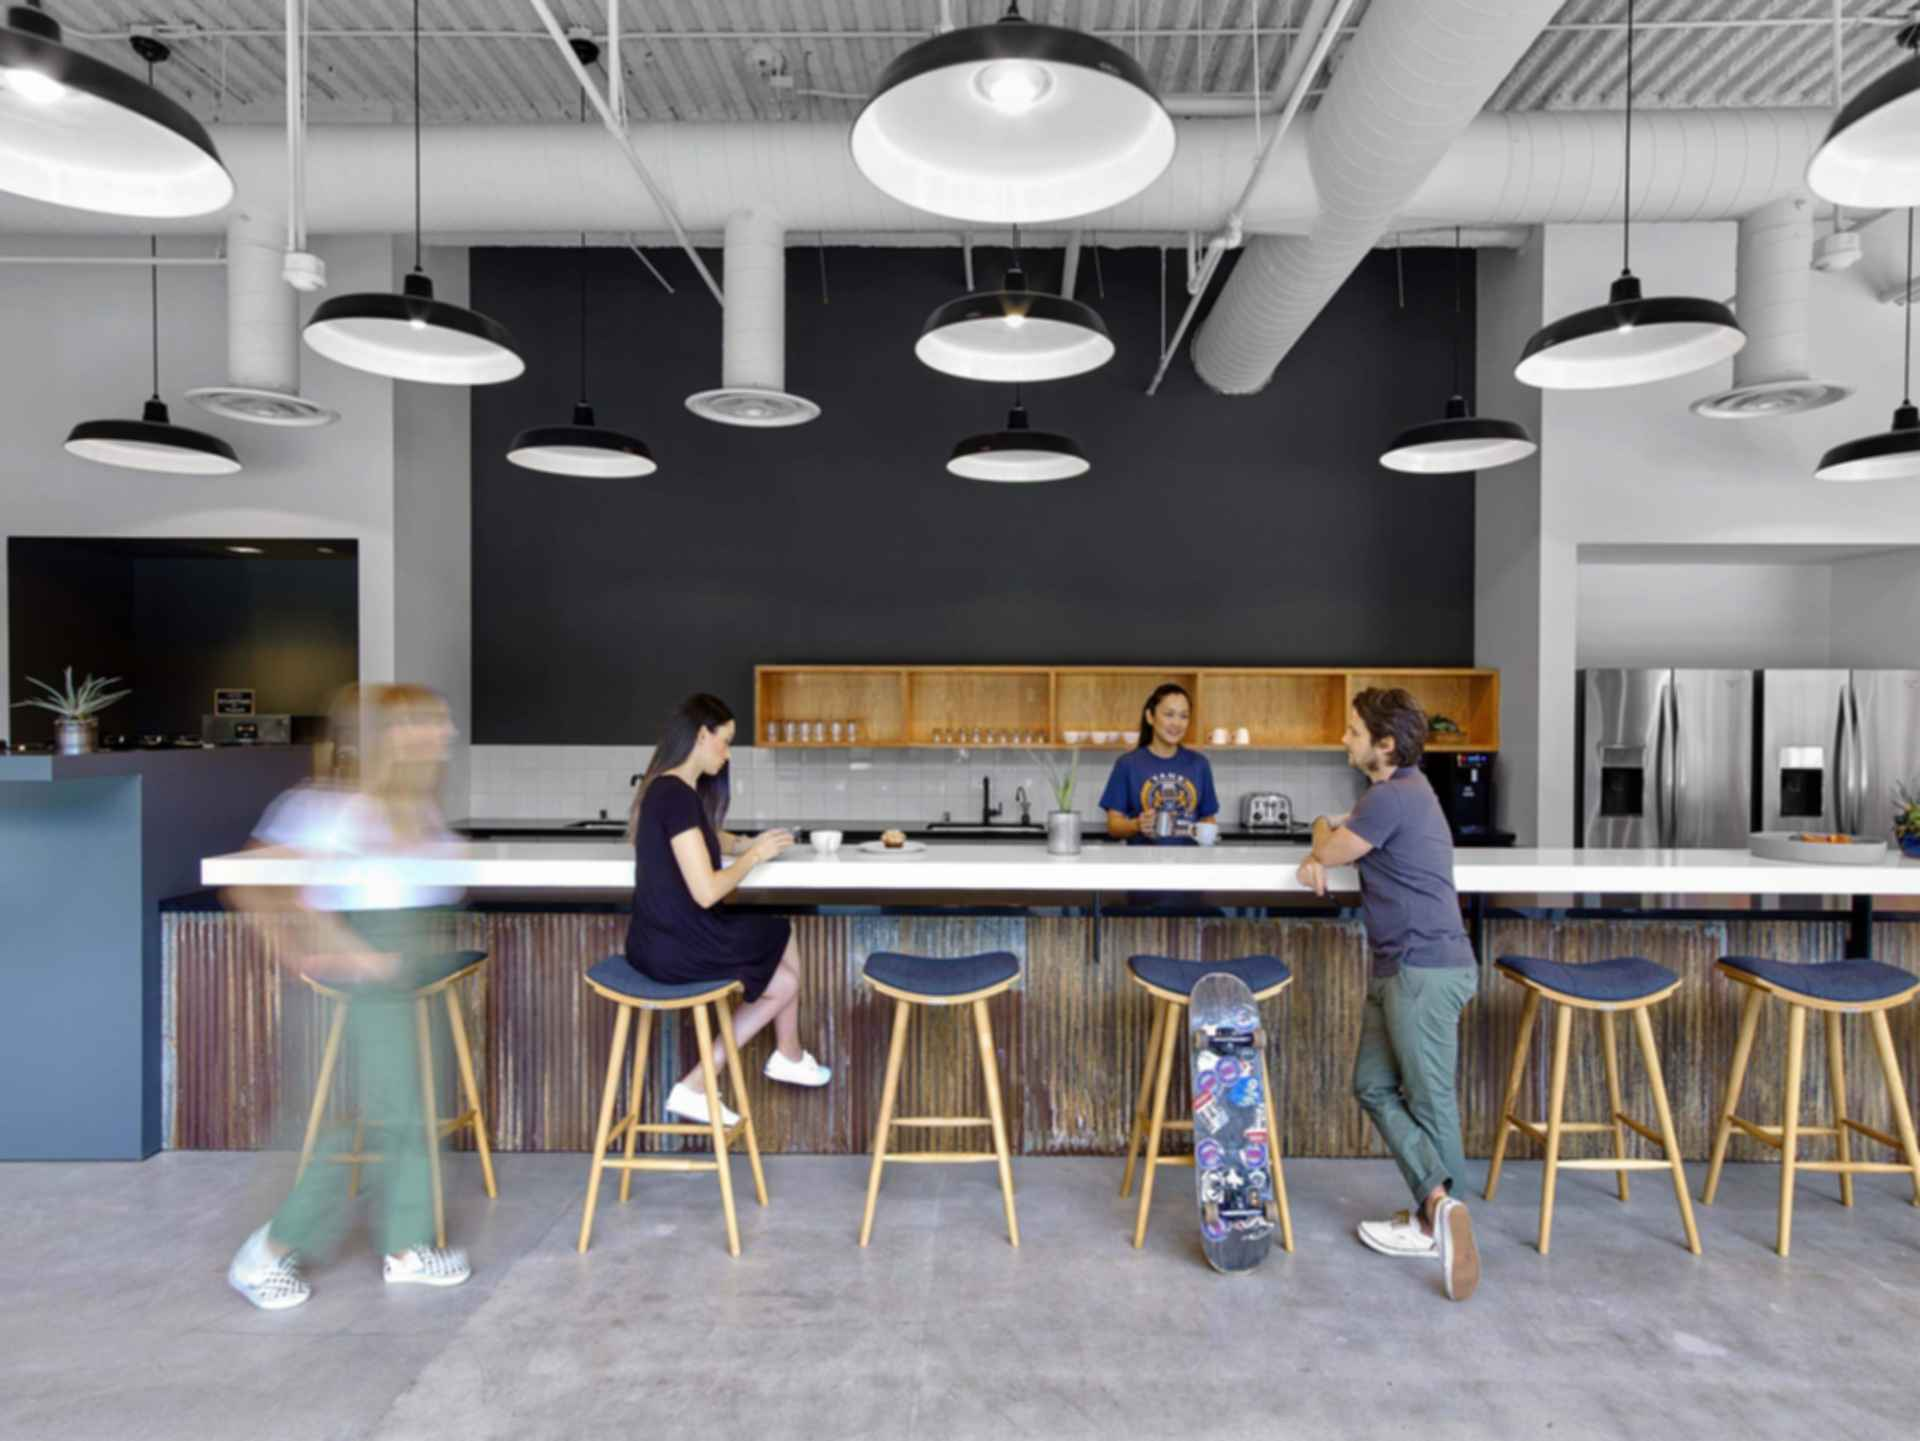 Vans Headquarters - Kitchen